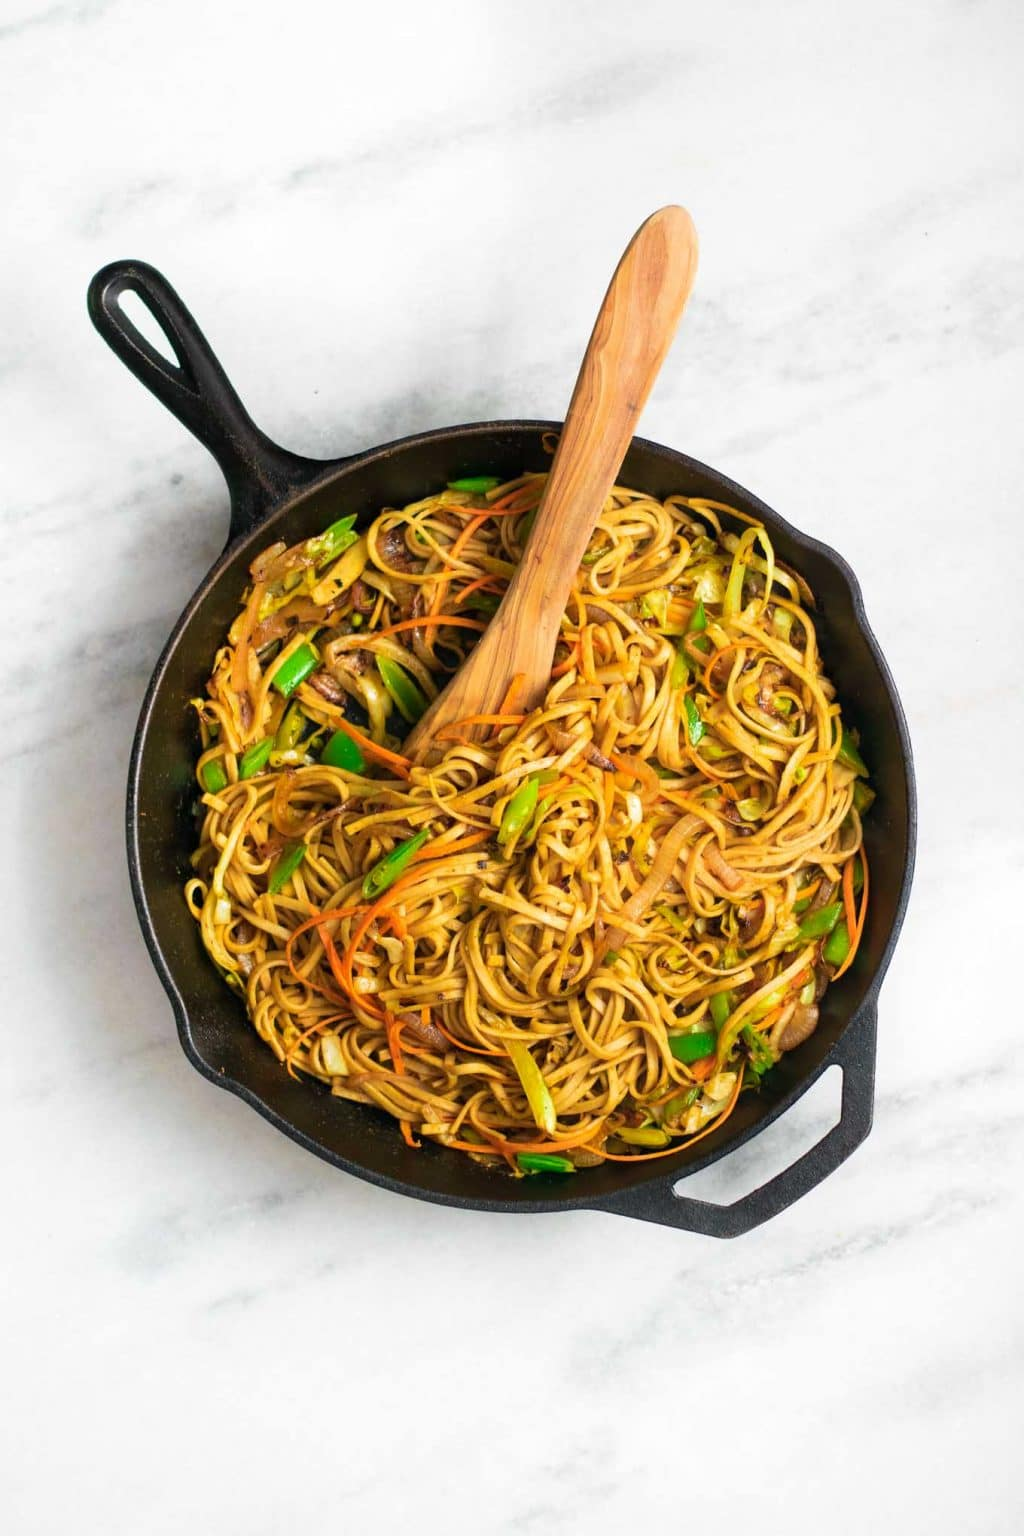 vegan singapore noodles made not traditionally with udon noodles in a cast iron skillet